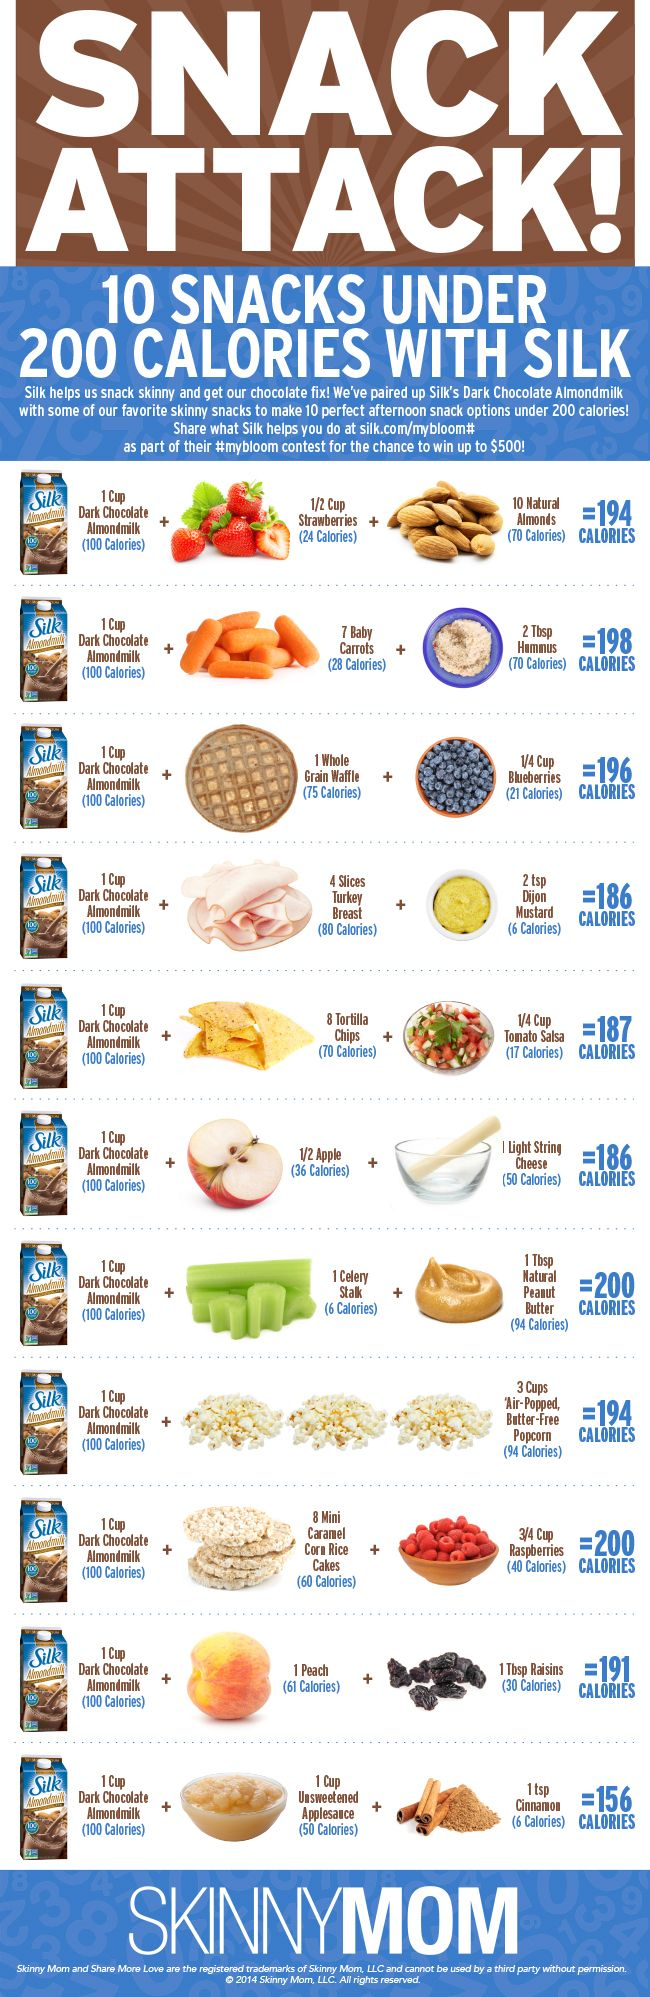 10 Snacks Under 200 Calories with Silk